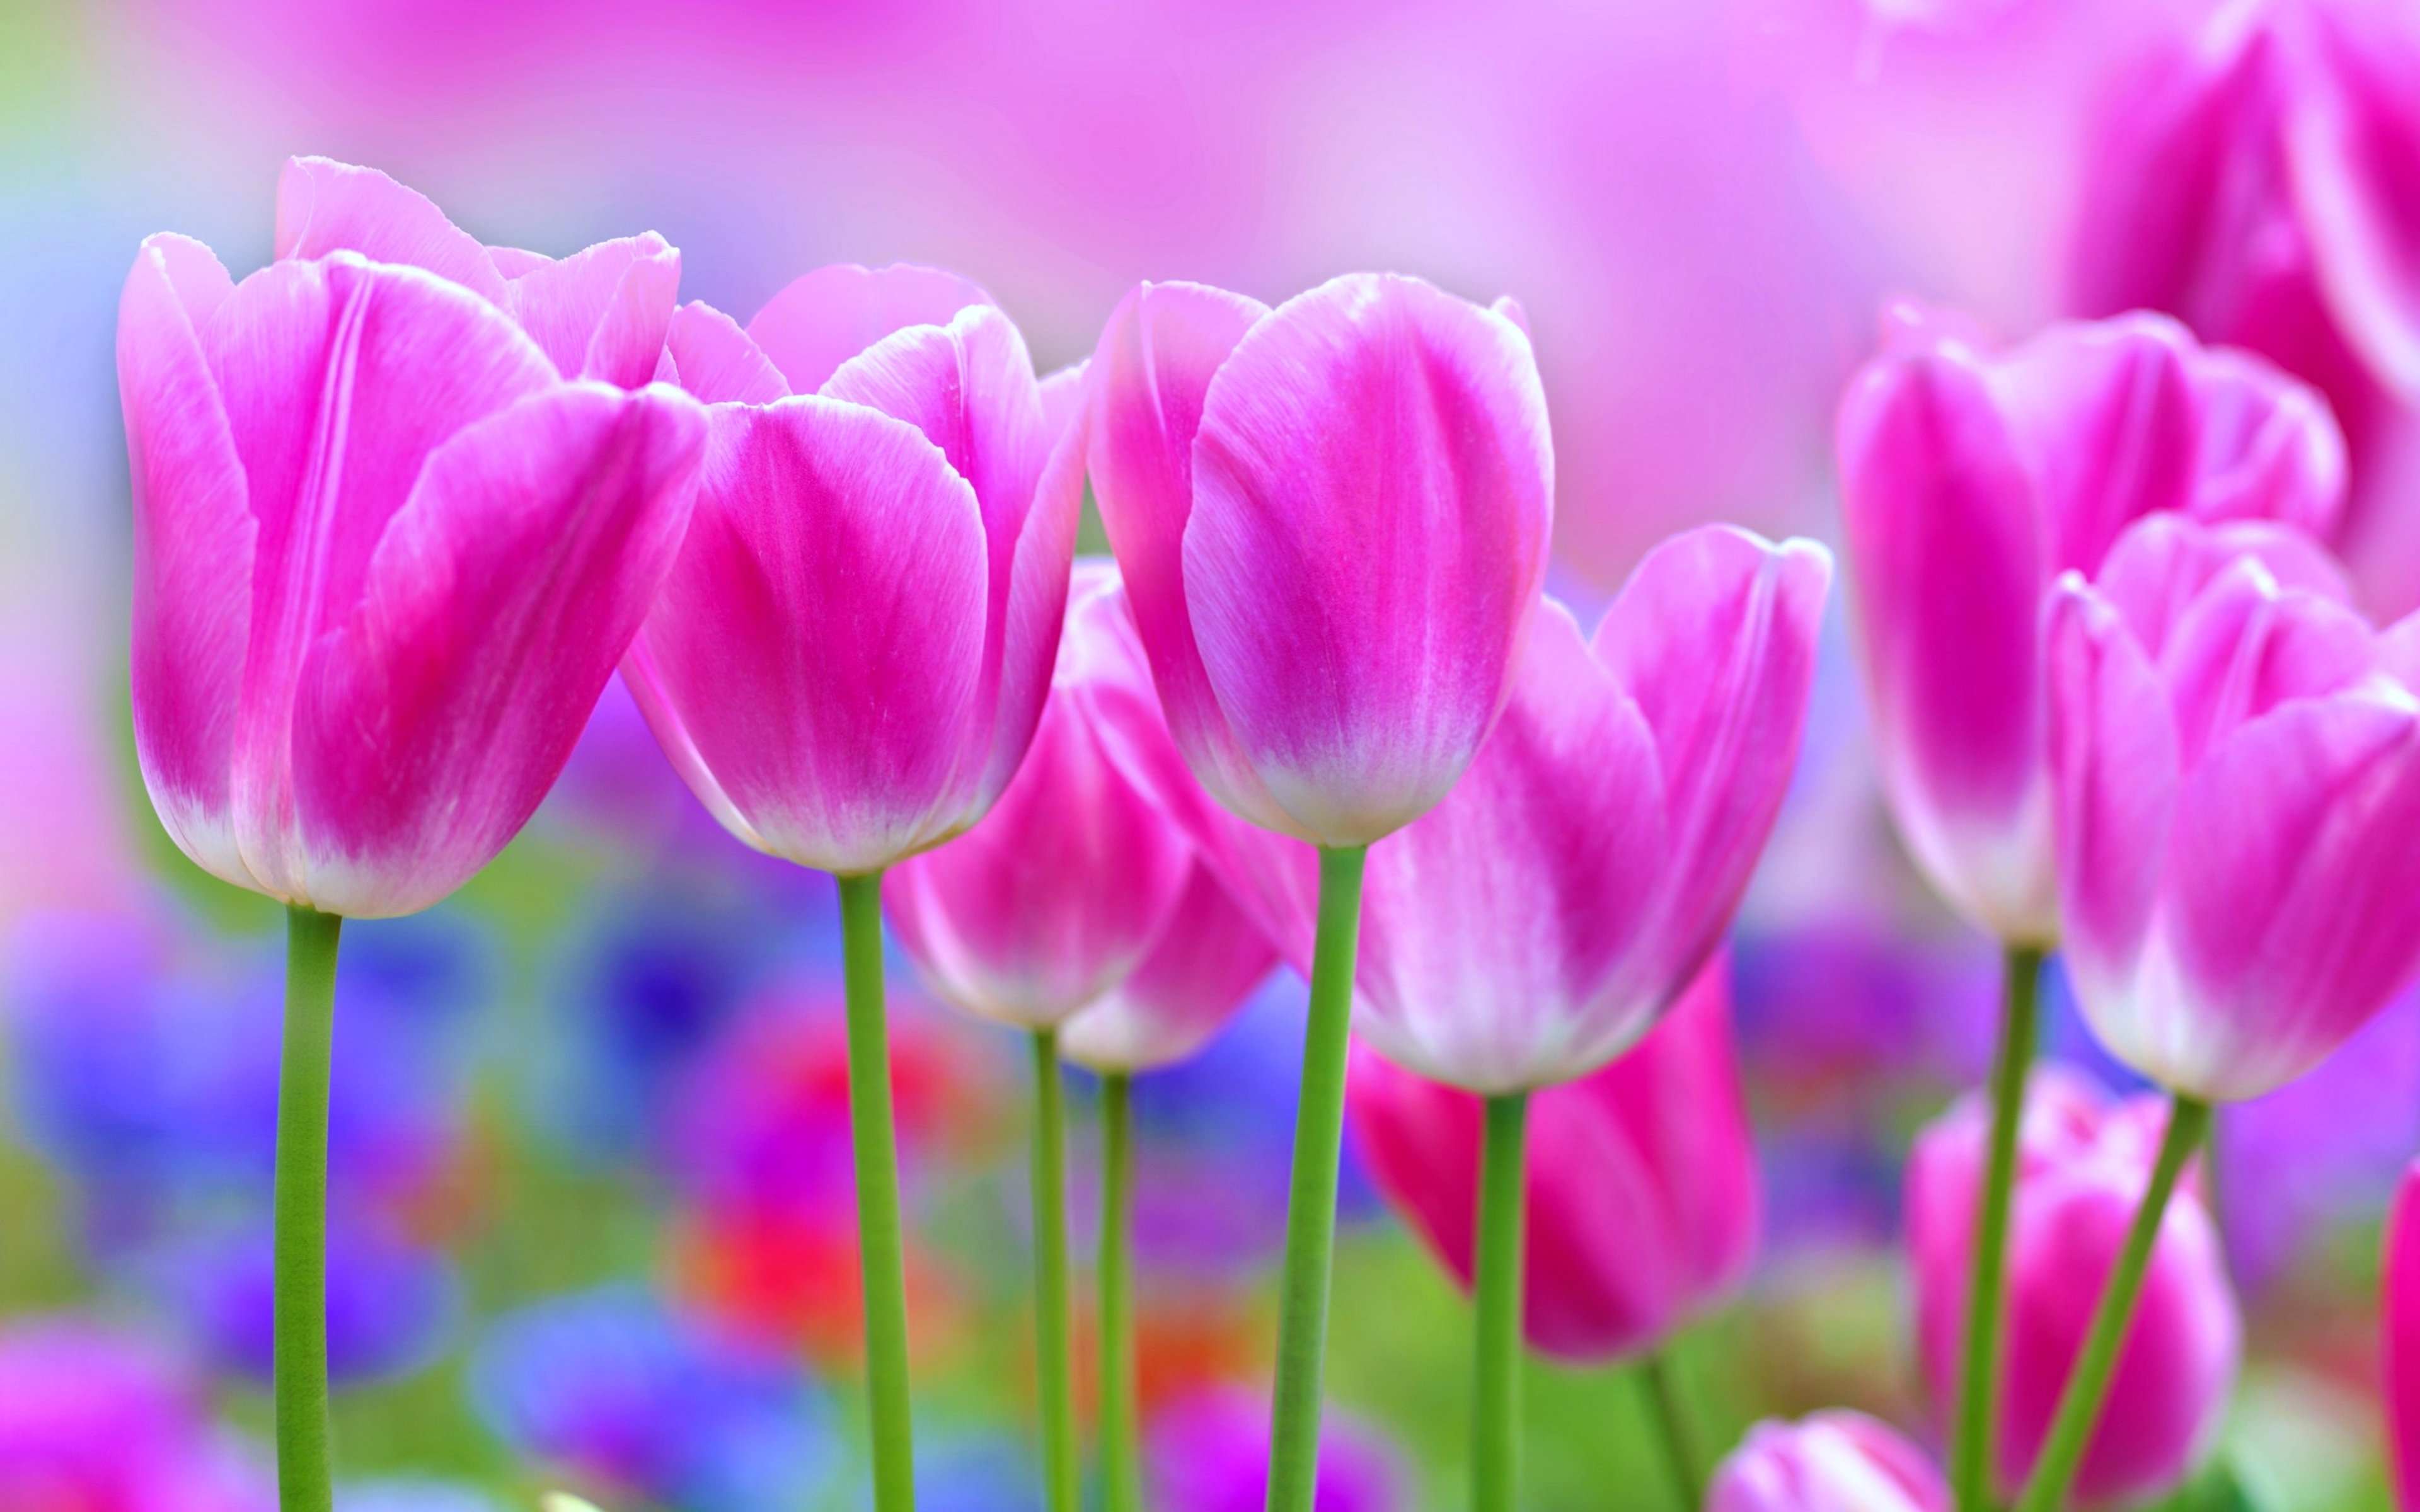 spring city tulips wallpaper - photo #13